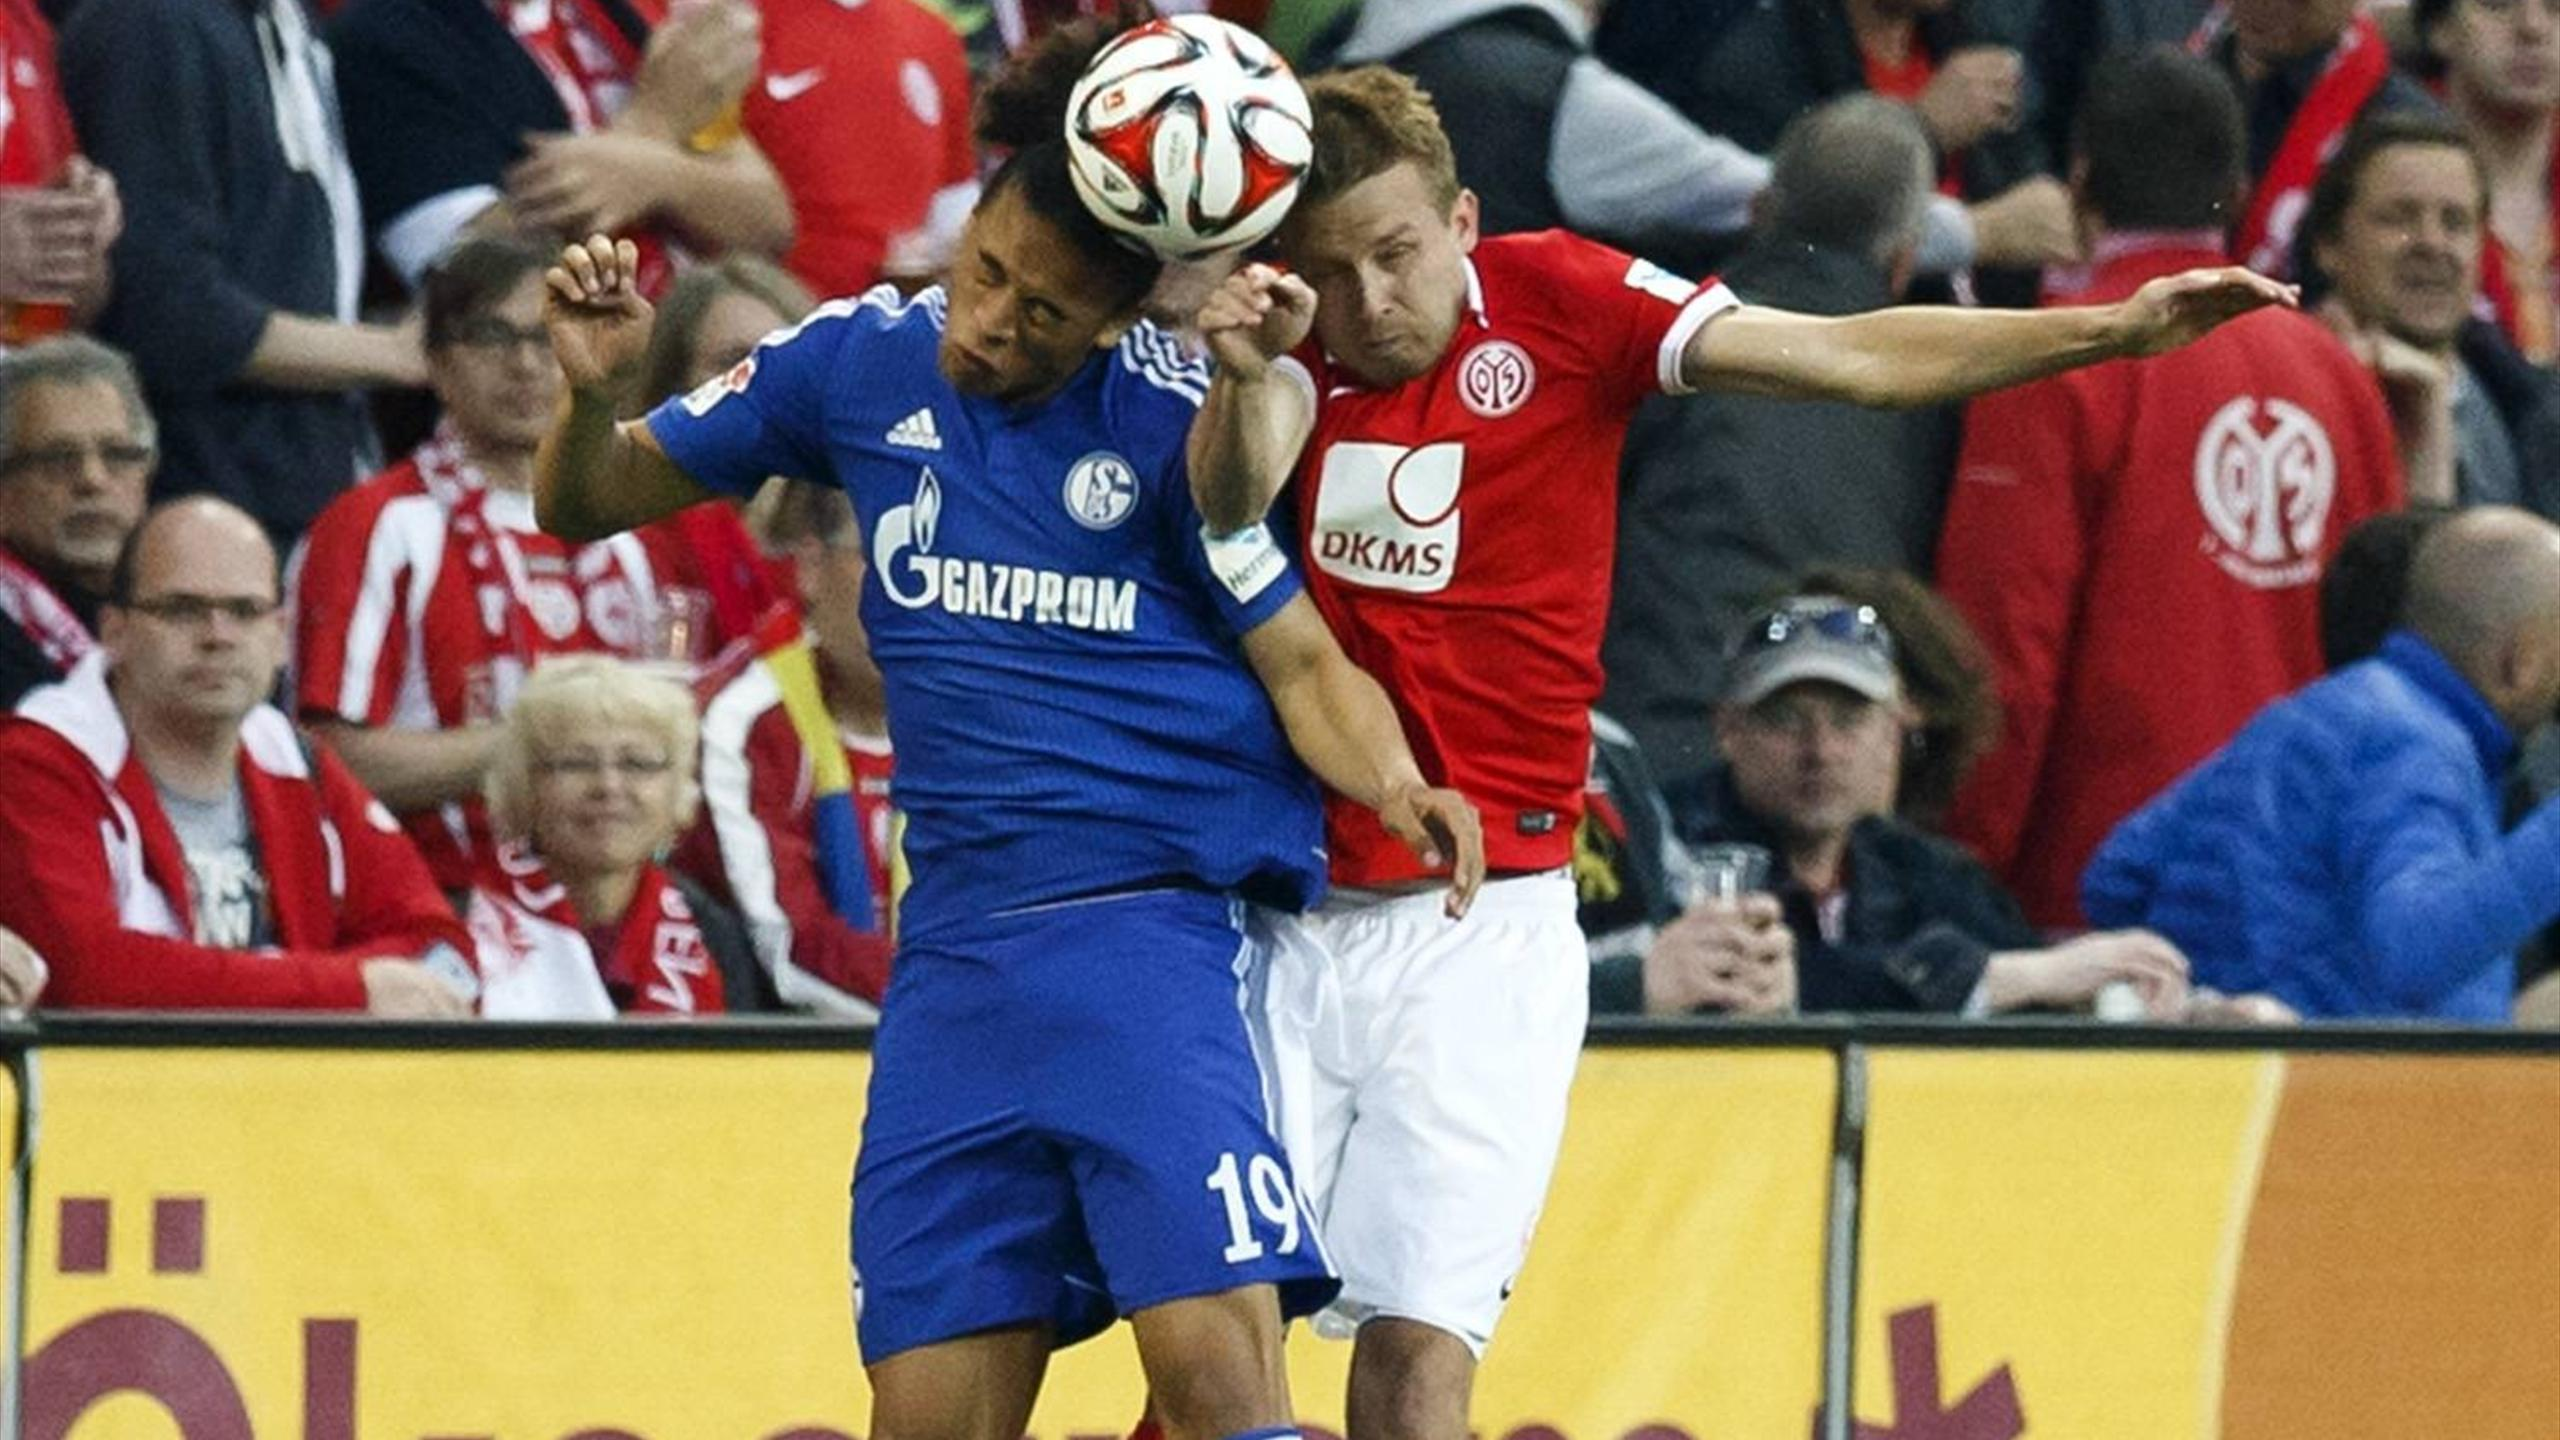 Video: Mainz 05 vs Schalke 04